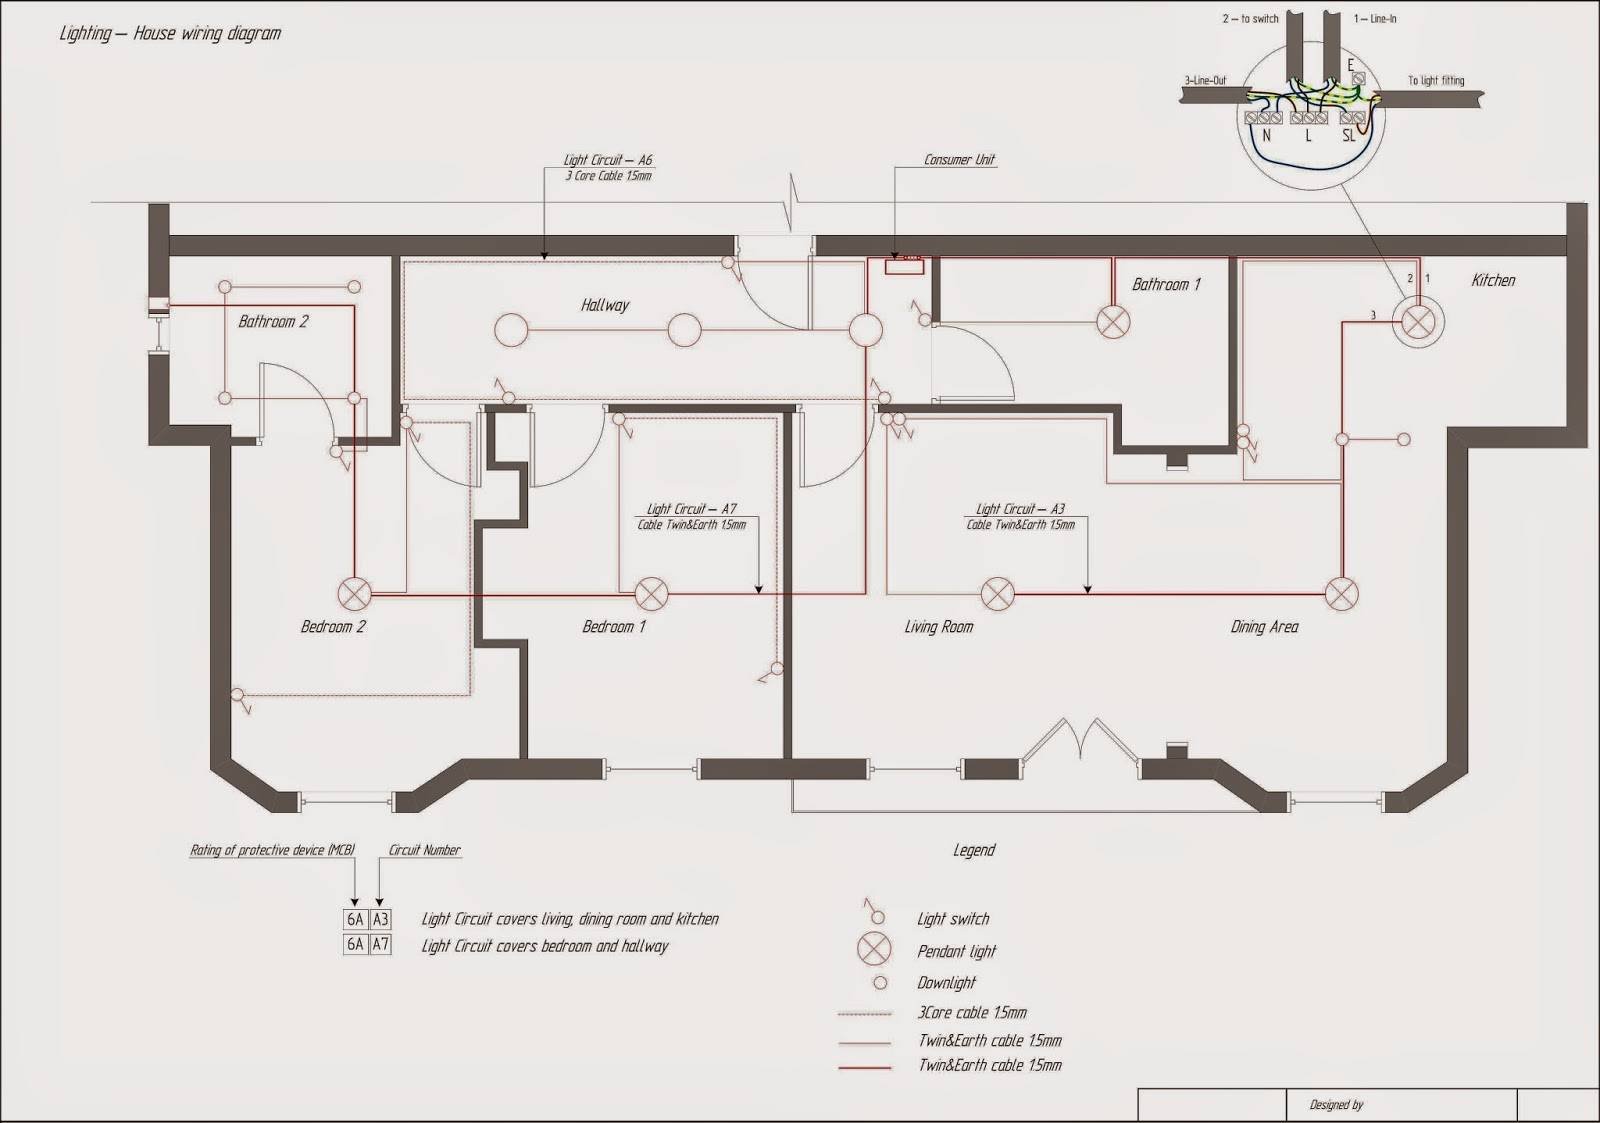 House Wiring Diagram | Owner And manual